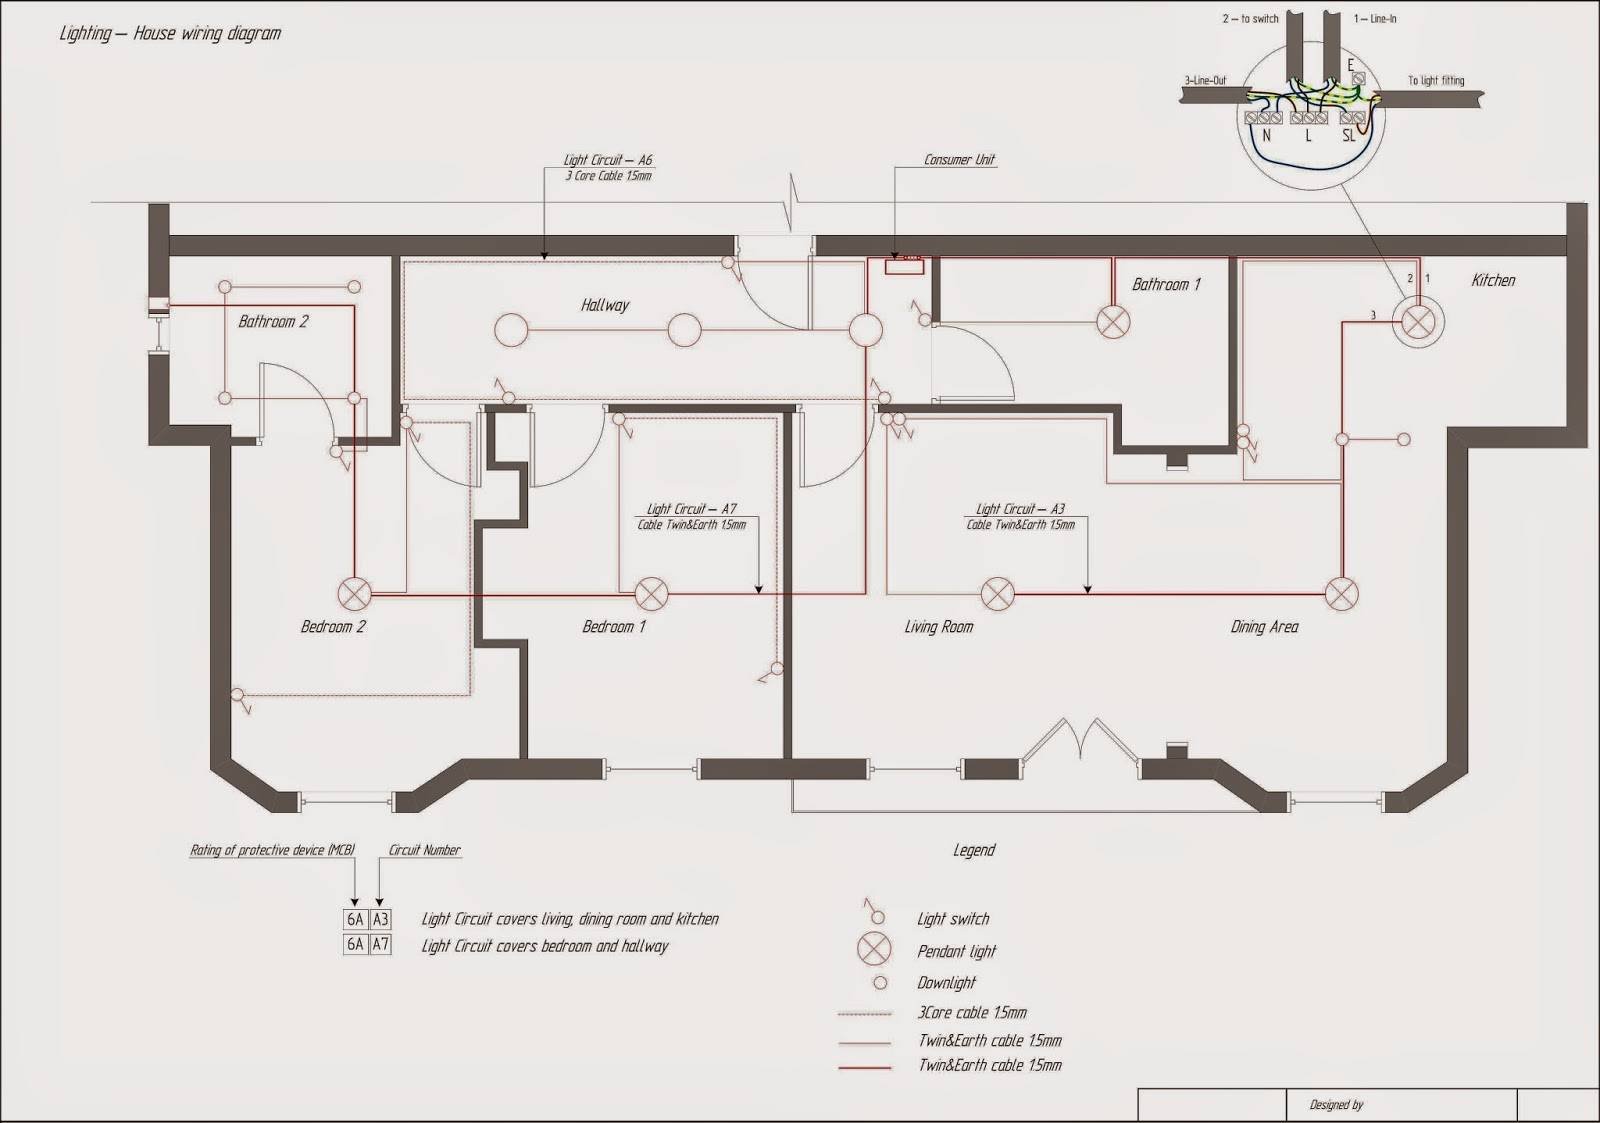 House Wiring Diagram | Owner And manual